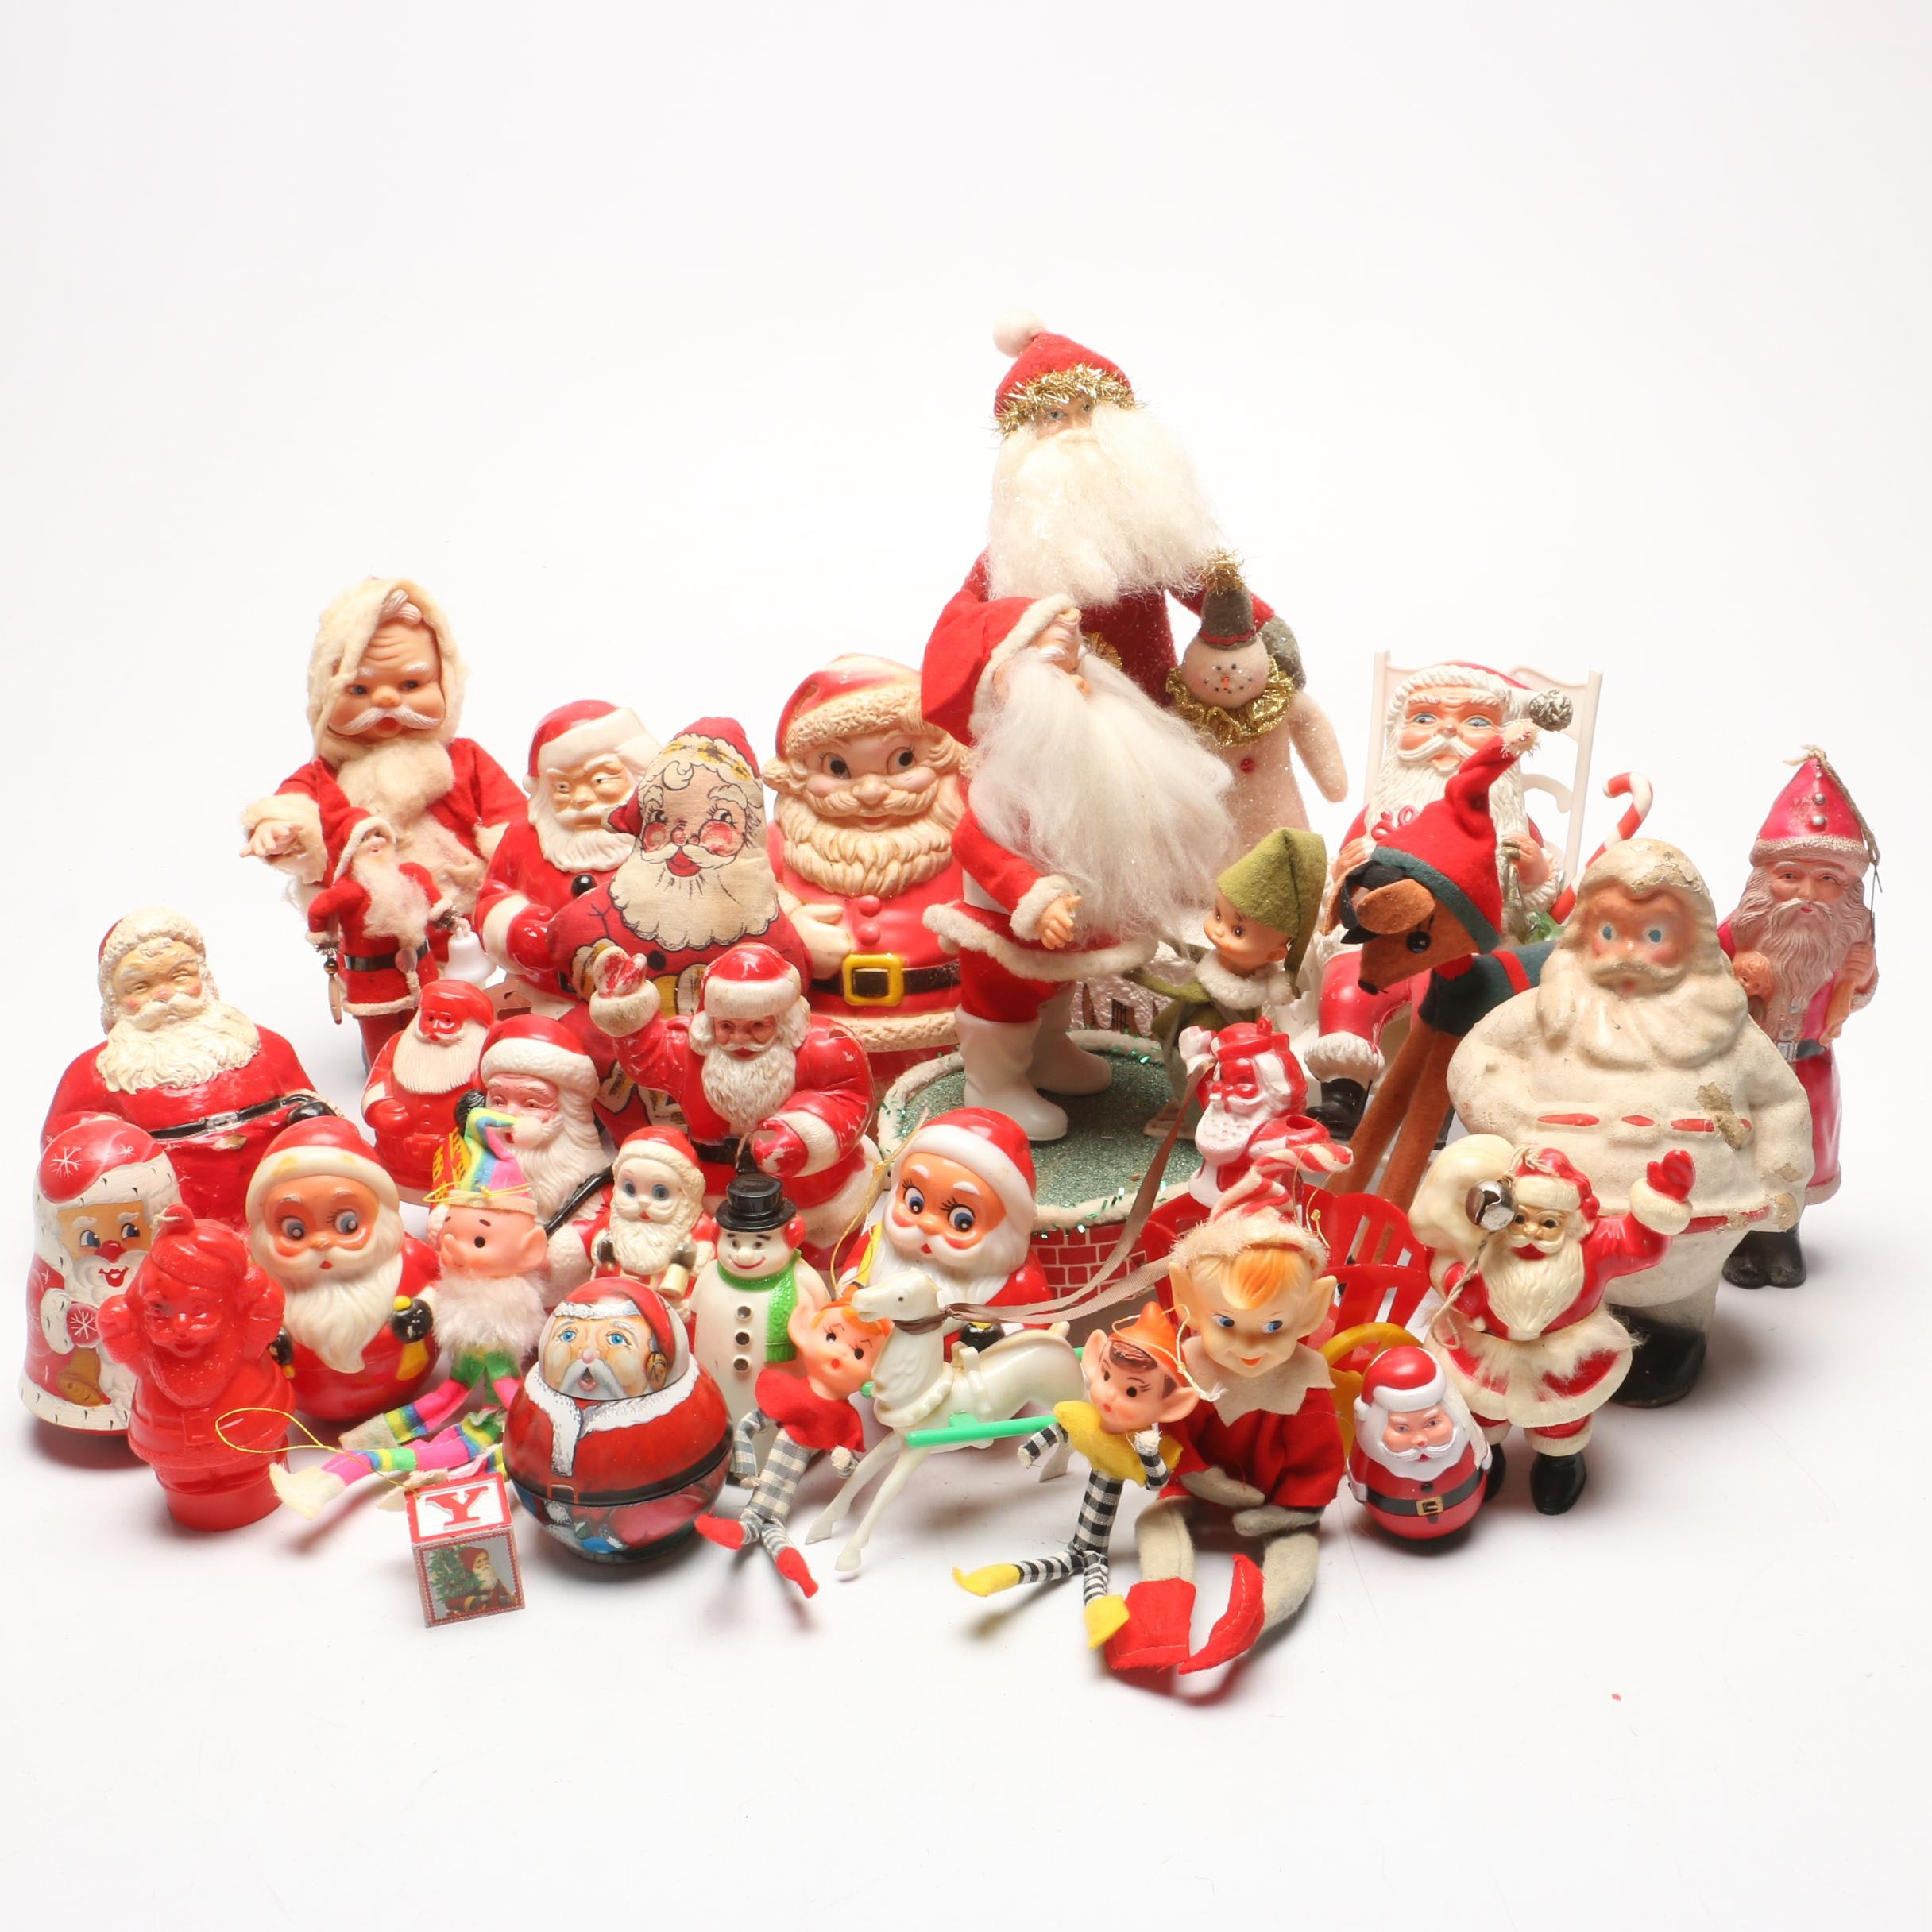 Grouping of Vintage Santa Claus and Elf Figurines and Toys